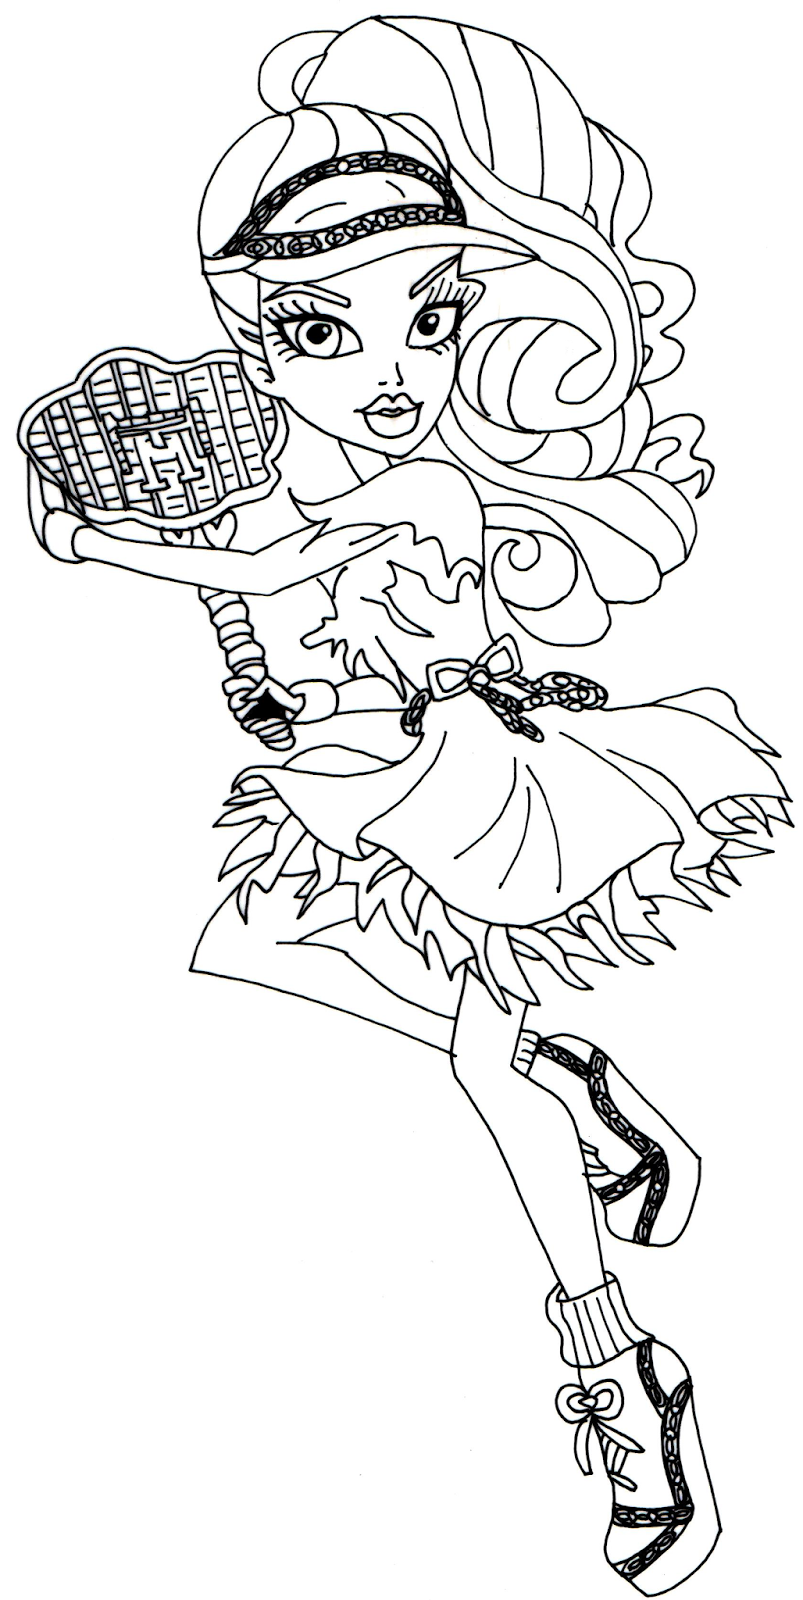 MOnster high coloring pages - monster high moviez | 1600x803